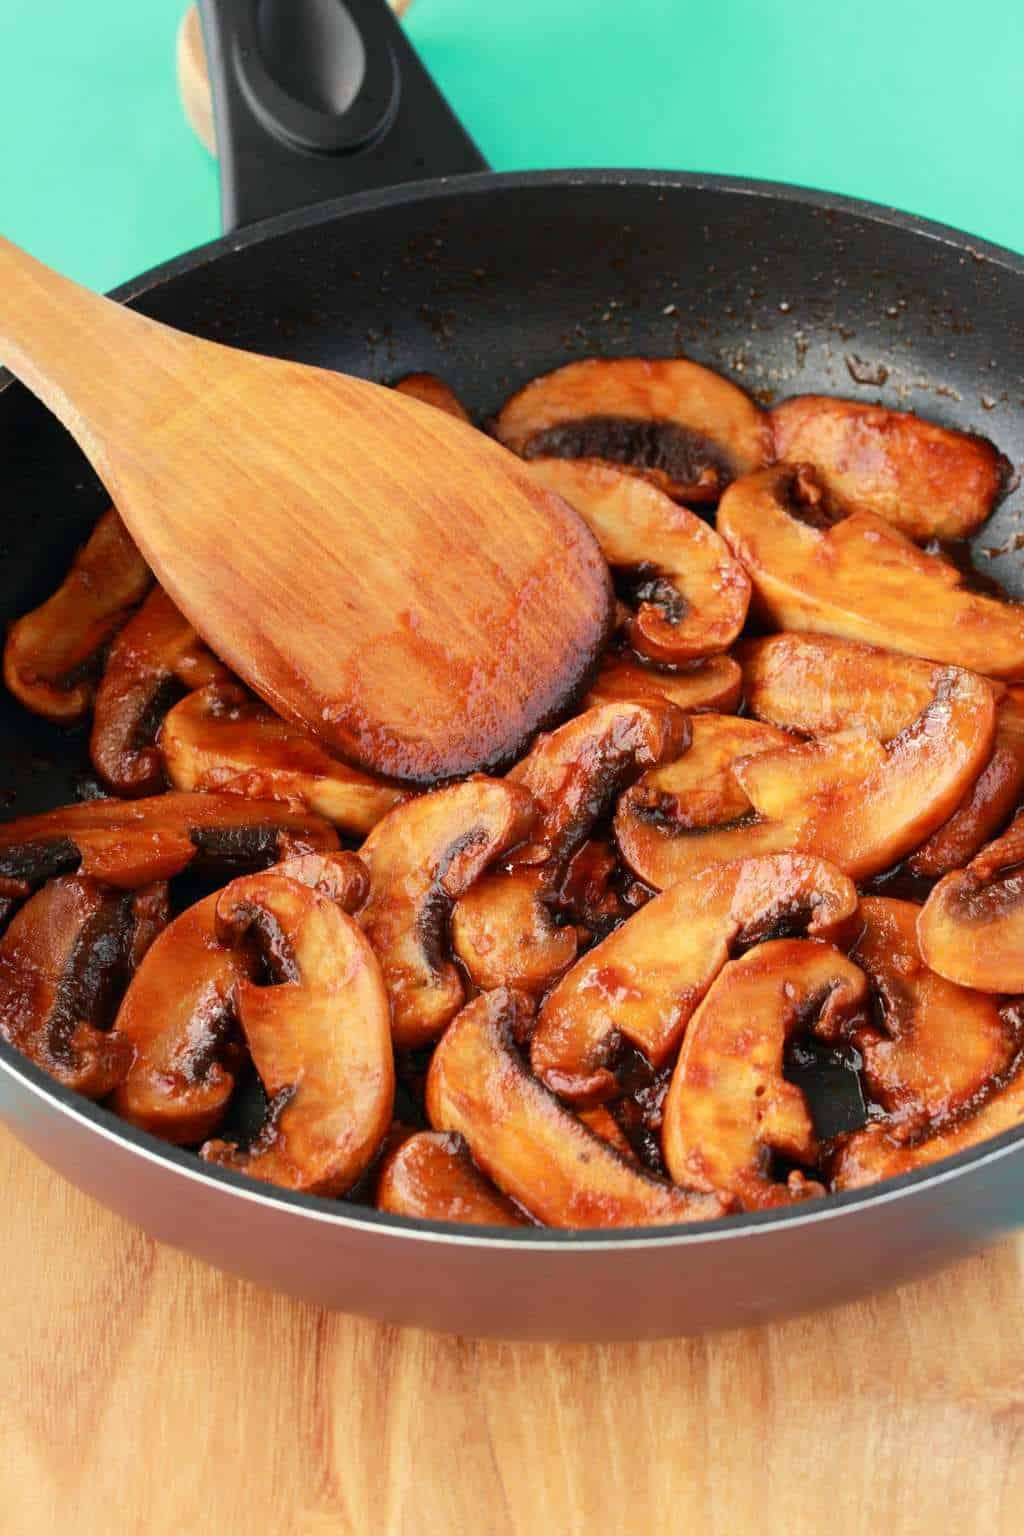 Freshly cooked mushrooms in a frying pan with a wooden spoon.